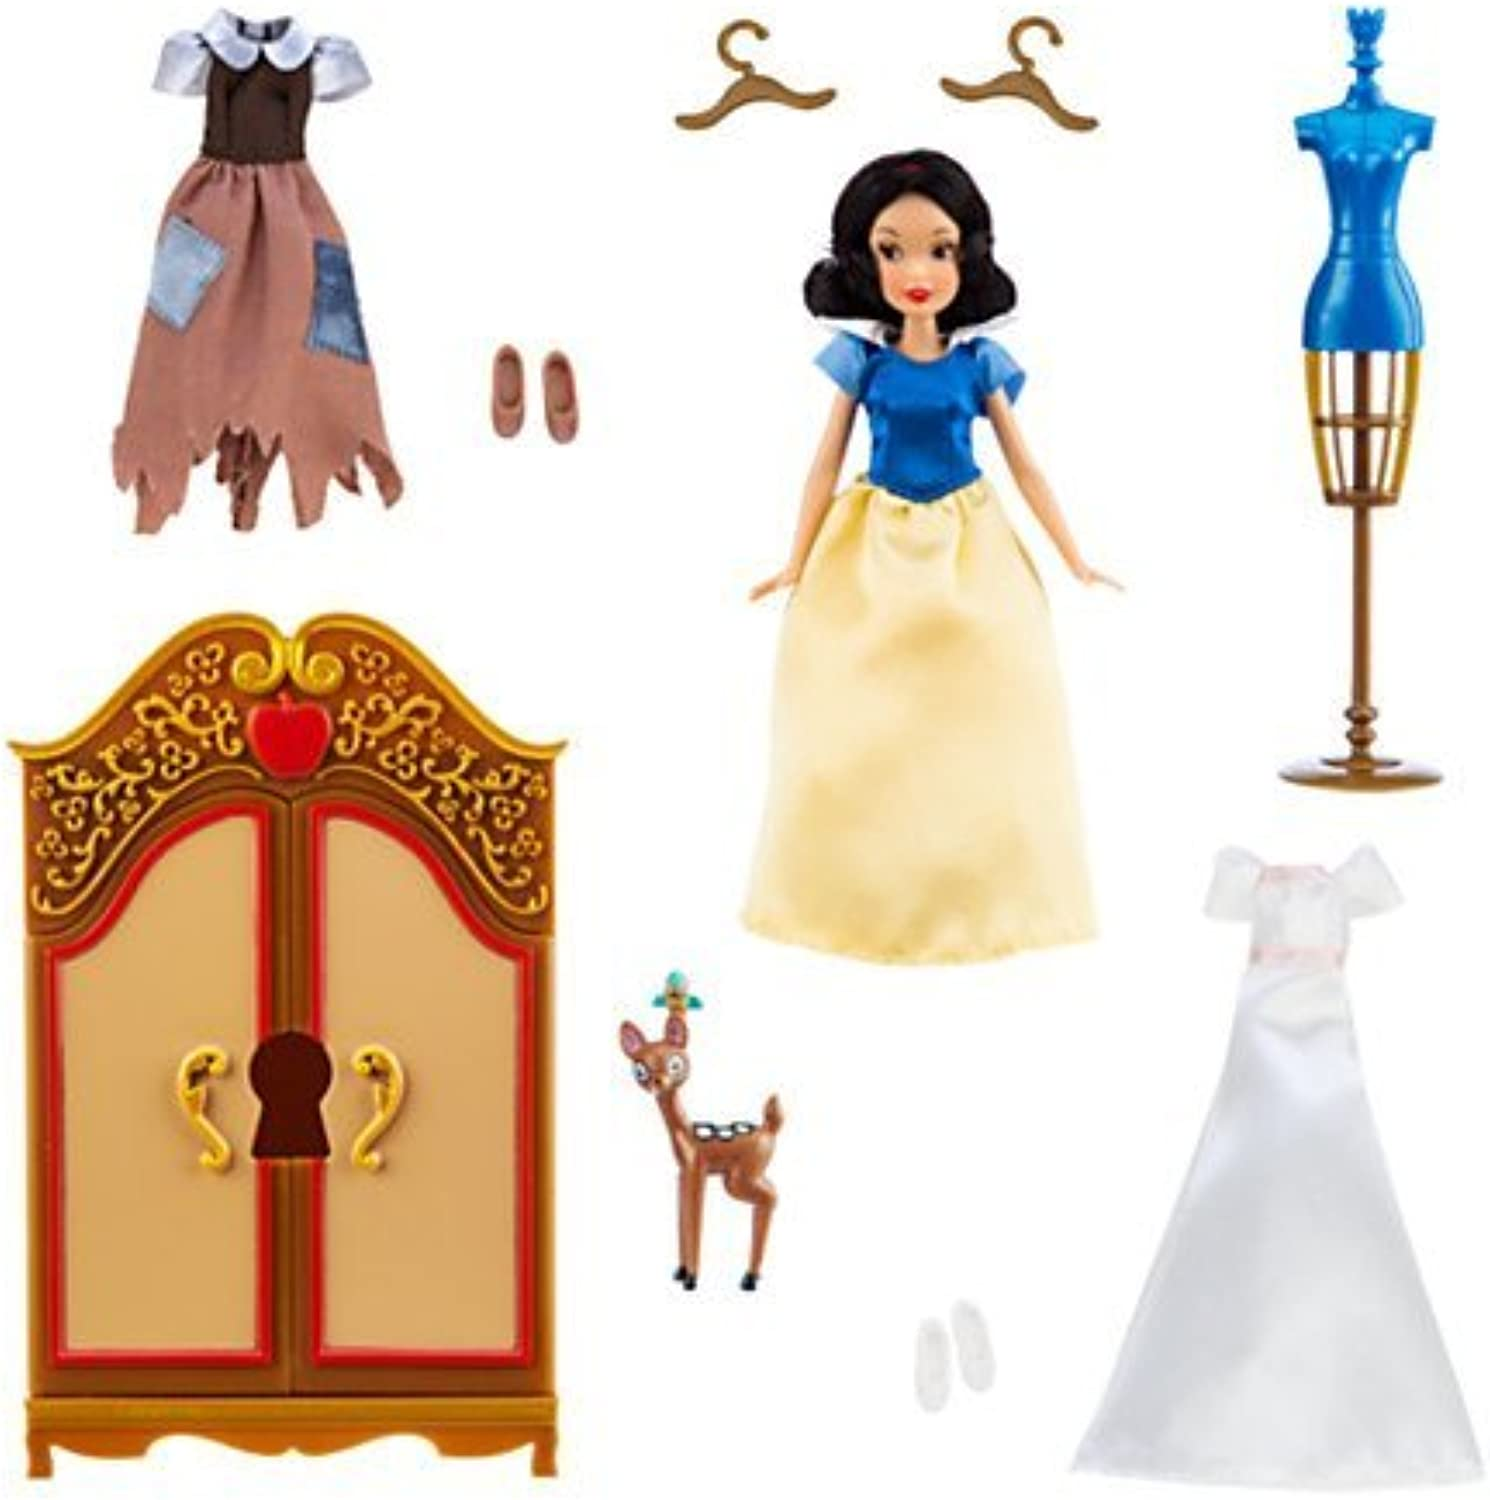 Disney Snow Weiß Wardrobe Doll Play Set by Disney